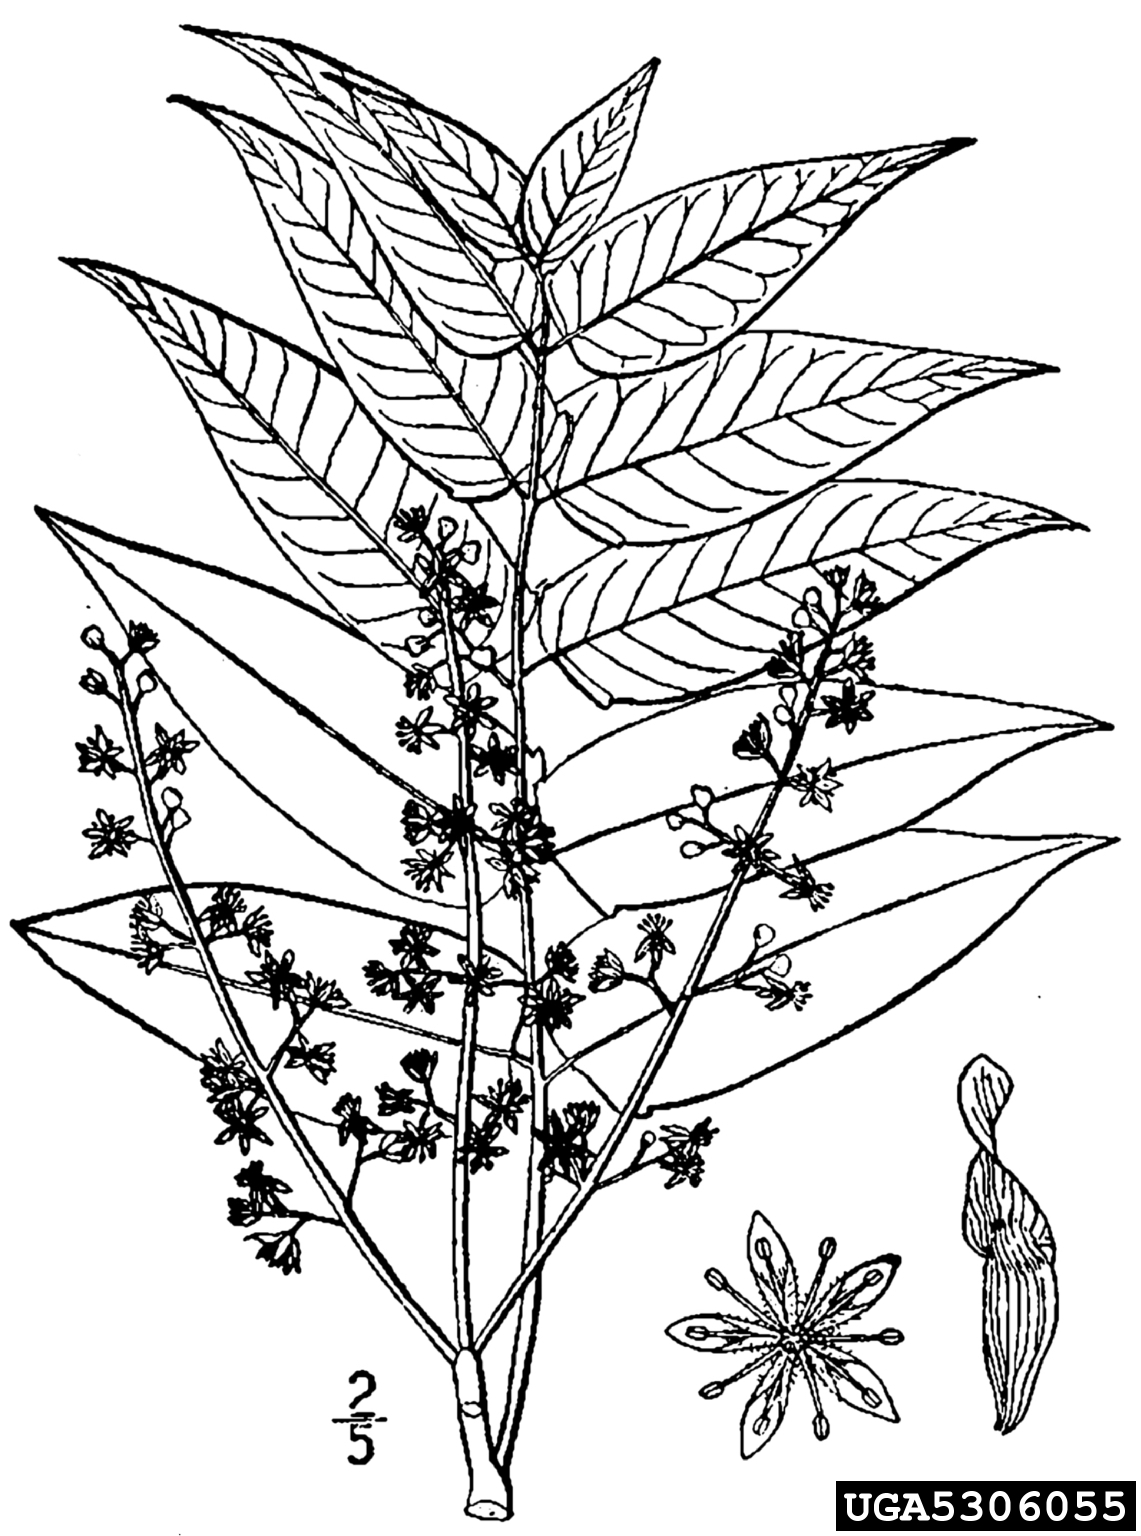 Tree Of Heaven Ailanthus Altissima Sapindales